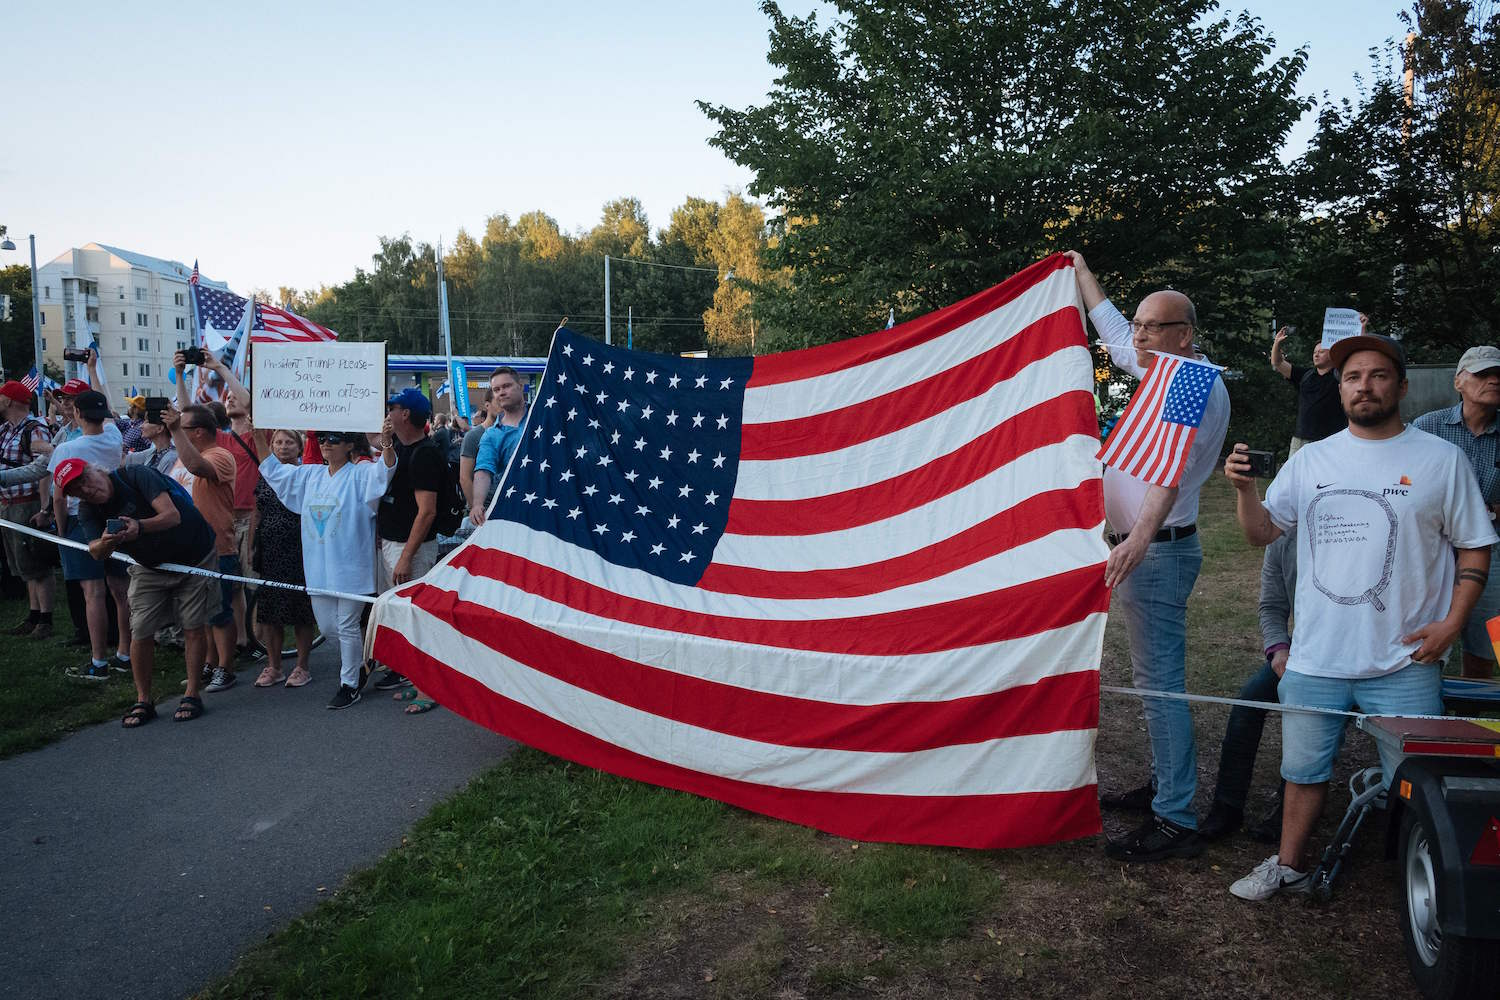 Supporters of US President Donald Trump hold an US flag as the Presidential cars passes by in Helsinki, Finland on July 15, 2018, on the eve of the meeting between the US President and his Russian counterpart. (ALESSANDRO RAMPAZZO/AFP/Getty Images)